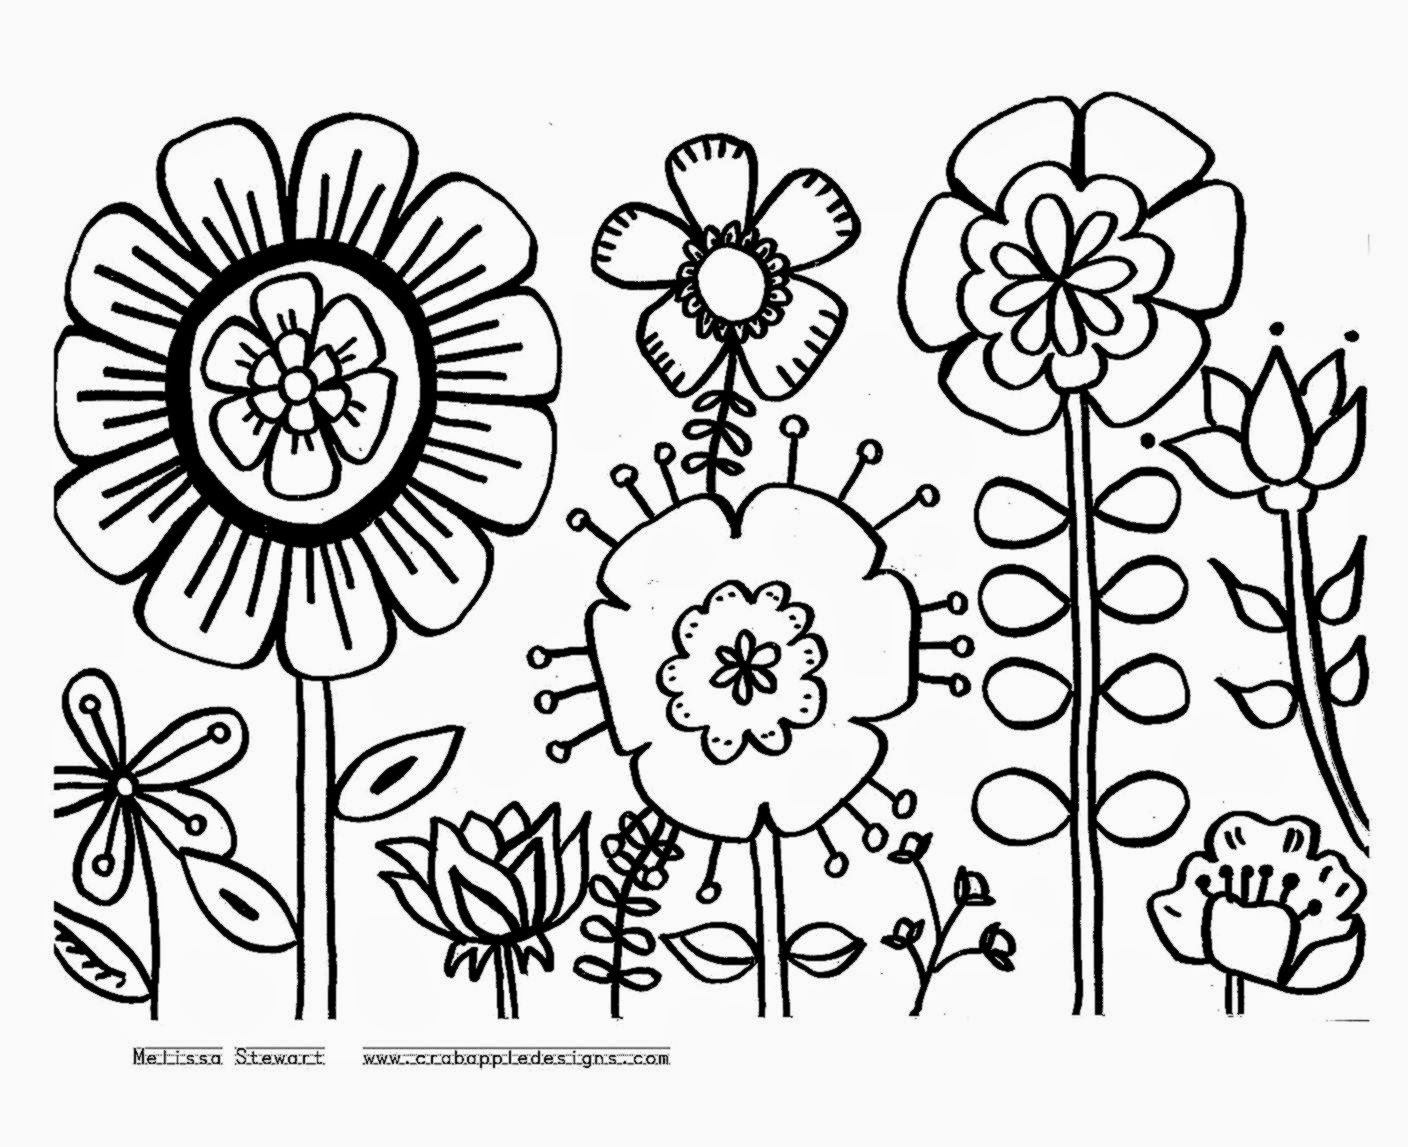 Coloring: Flower Garden Coloring Pages To Download And Print For Free